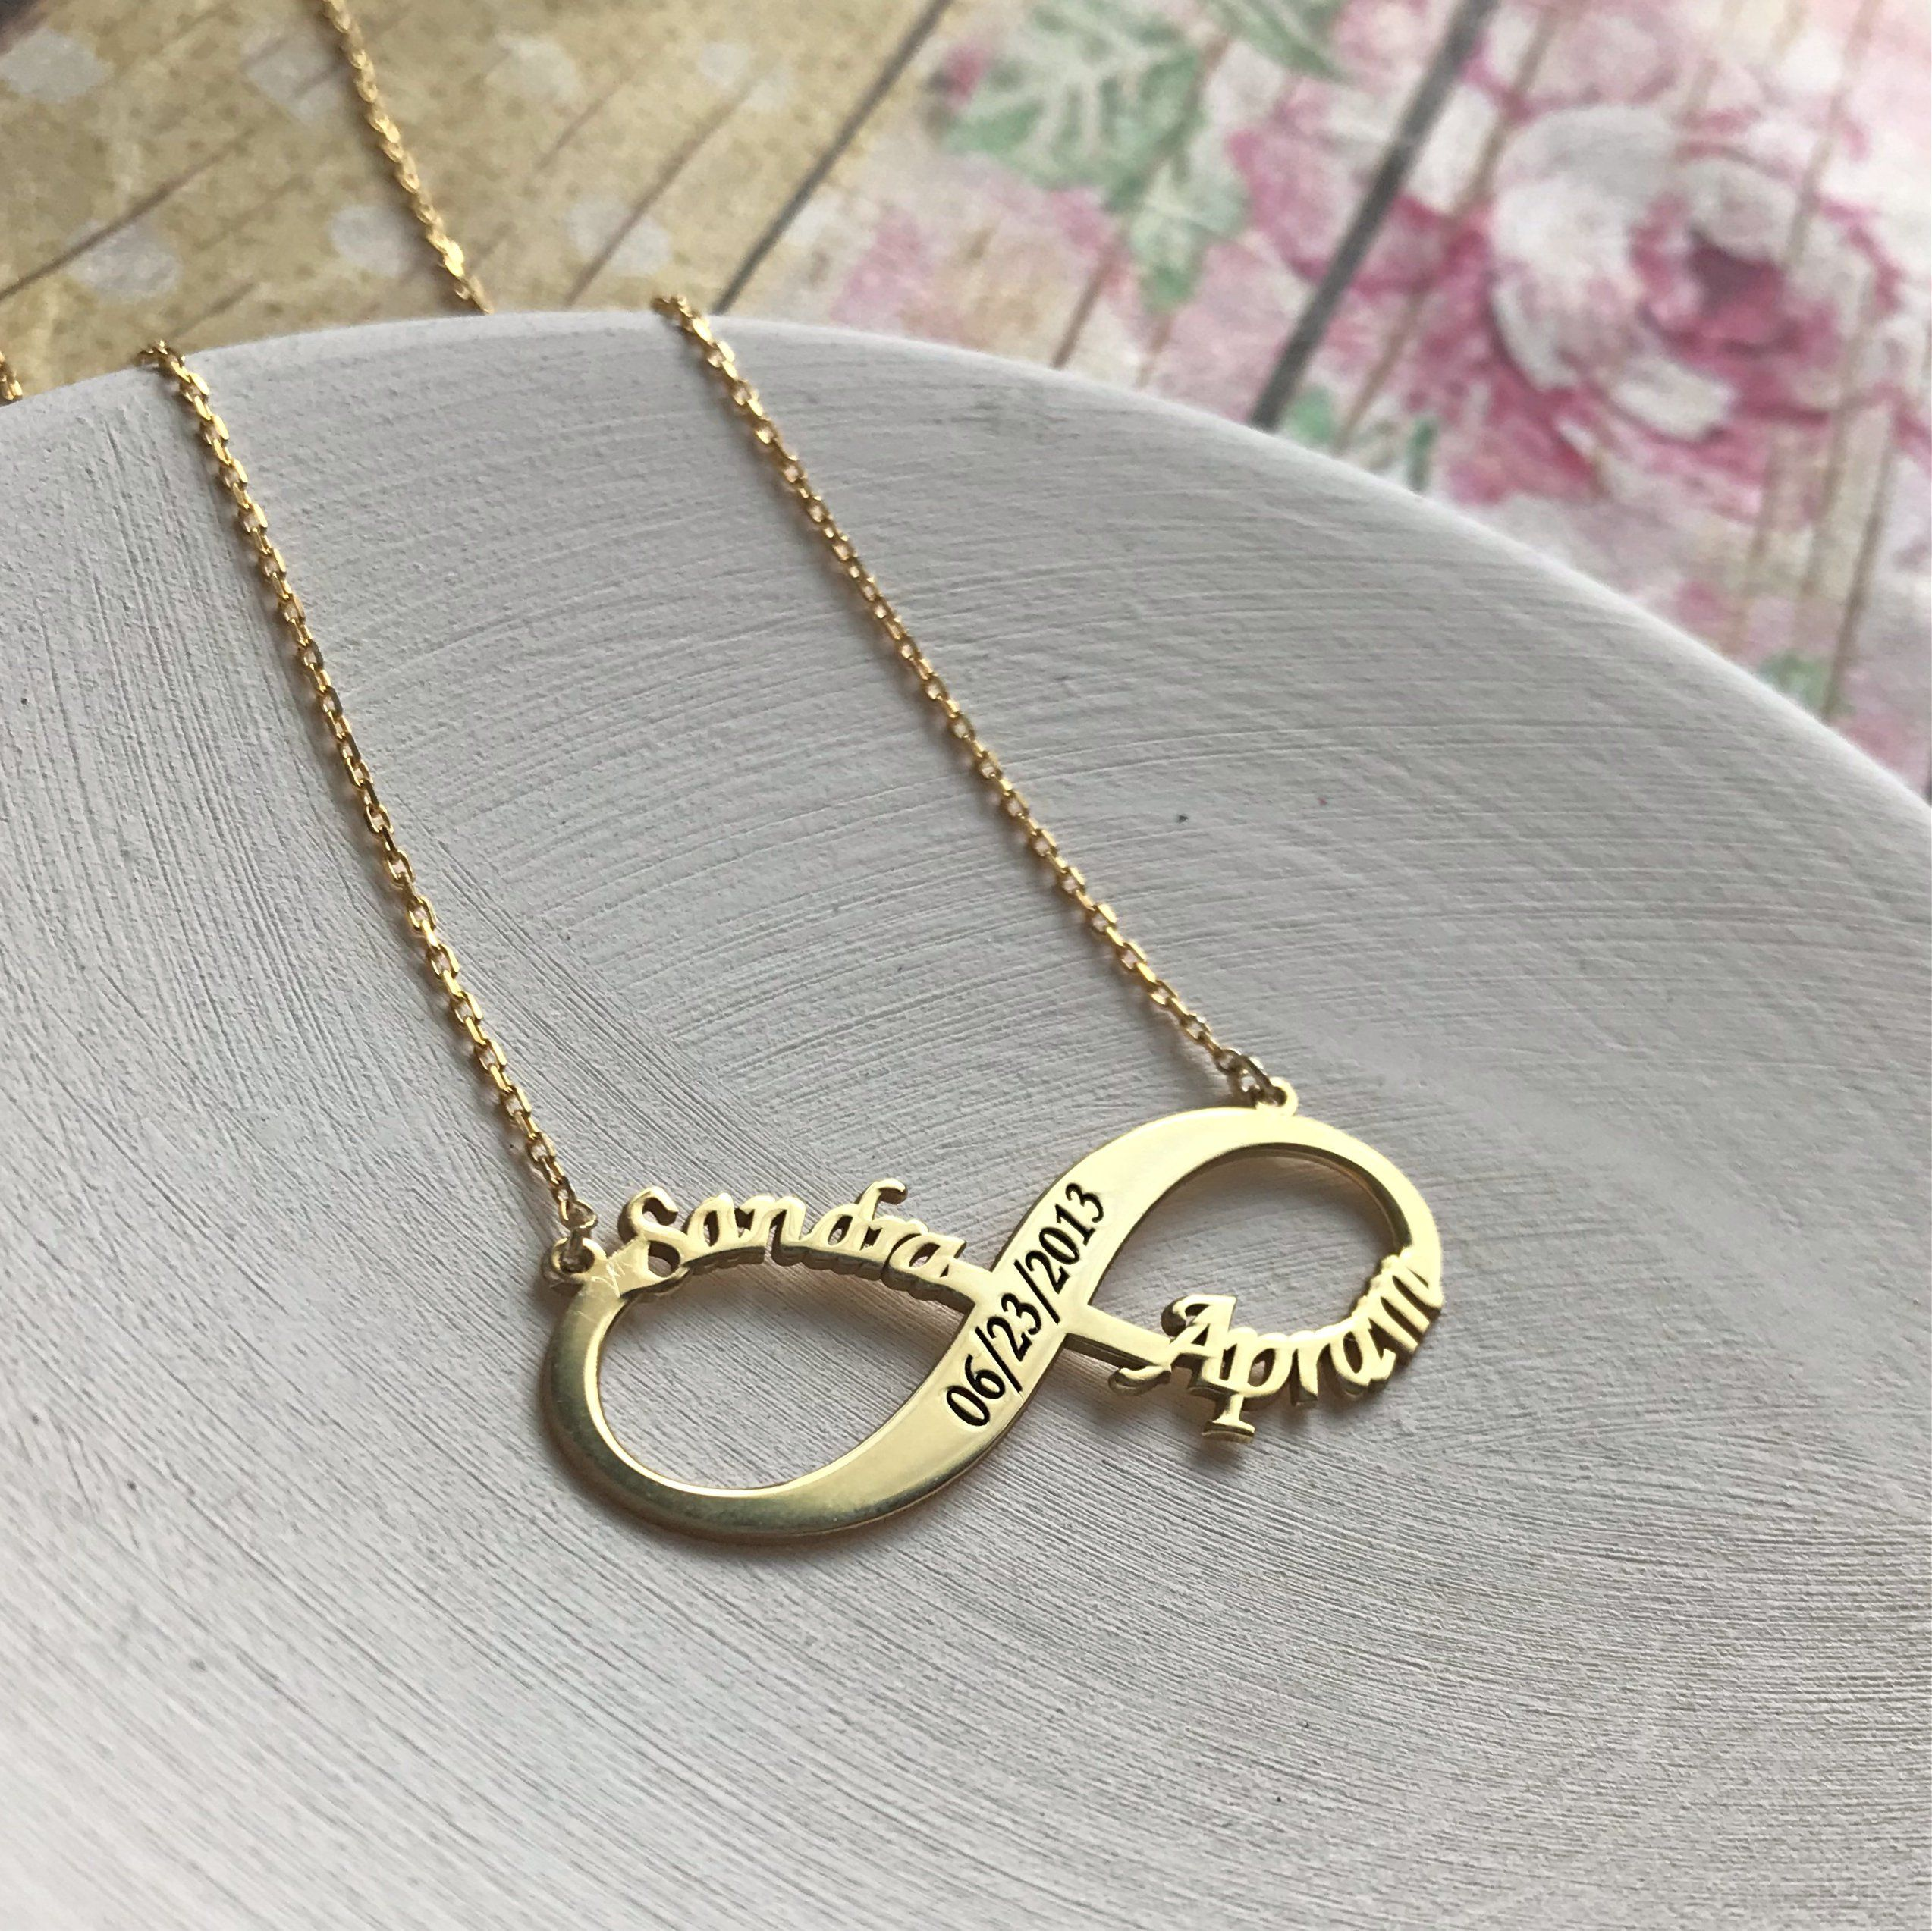 7dfd735924362 Gold Personalized Infinity Necklace, Custom Infinity Necklace, Name ...